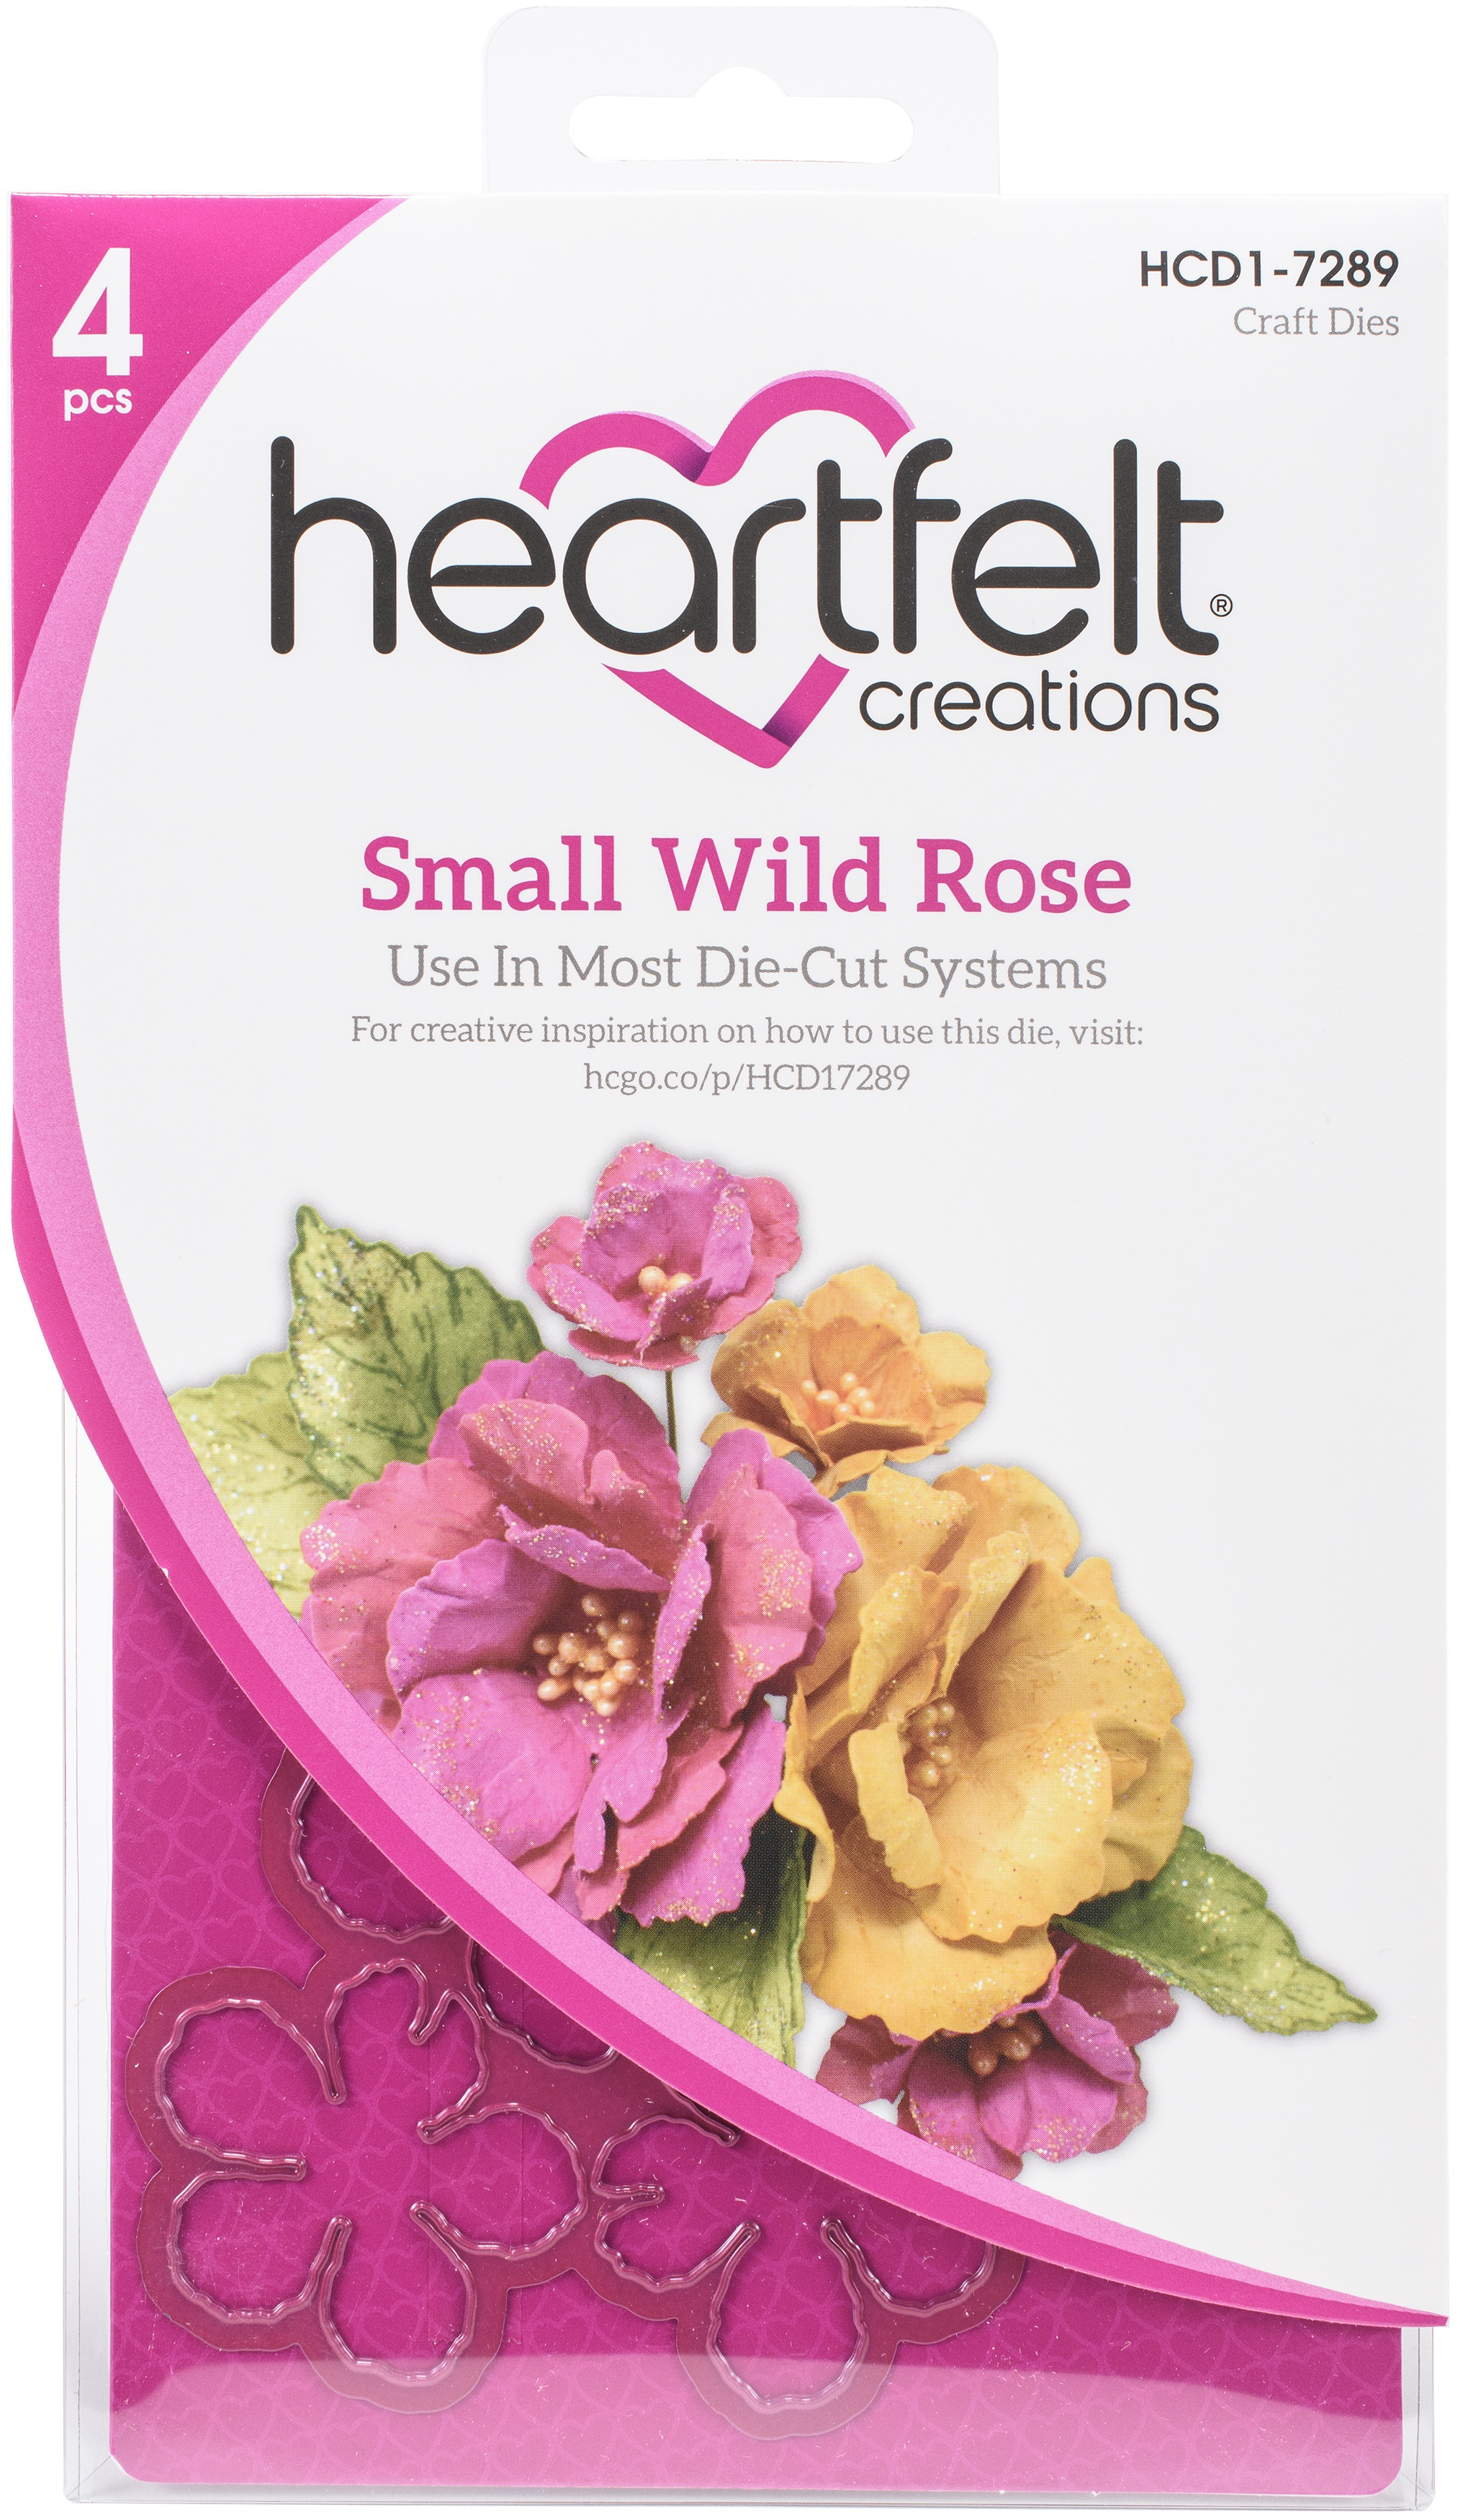 Small Wild Rose Die